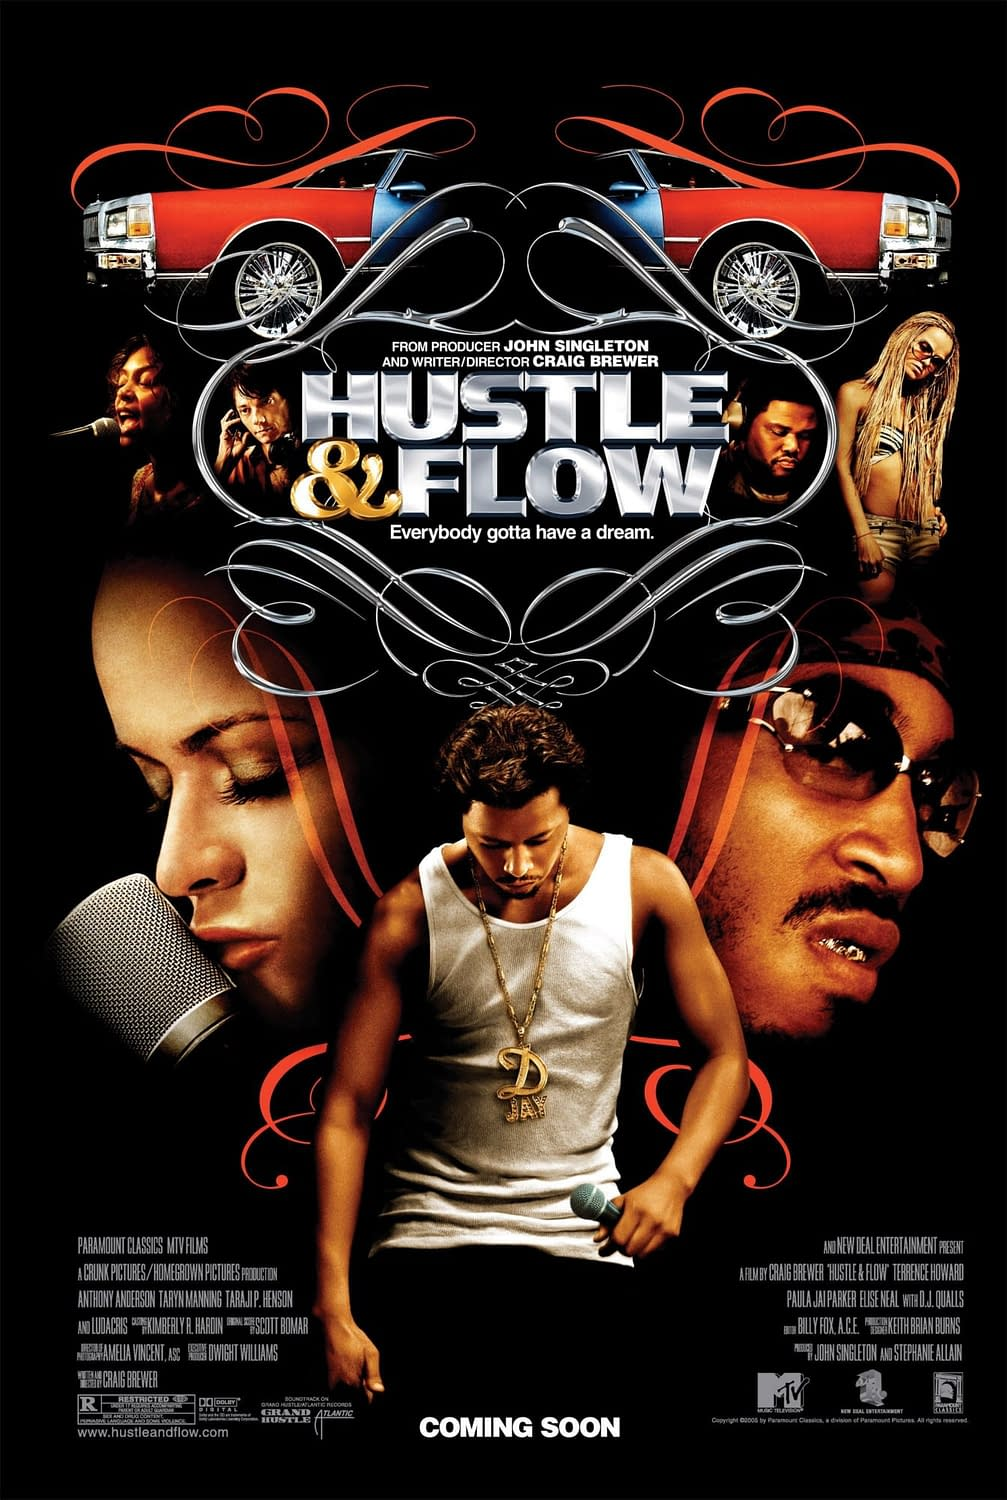 In appreciation of Hustle and Flow